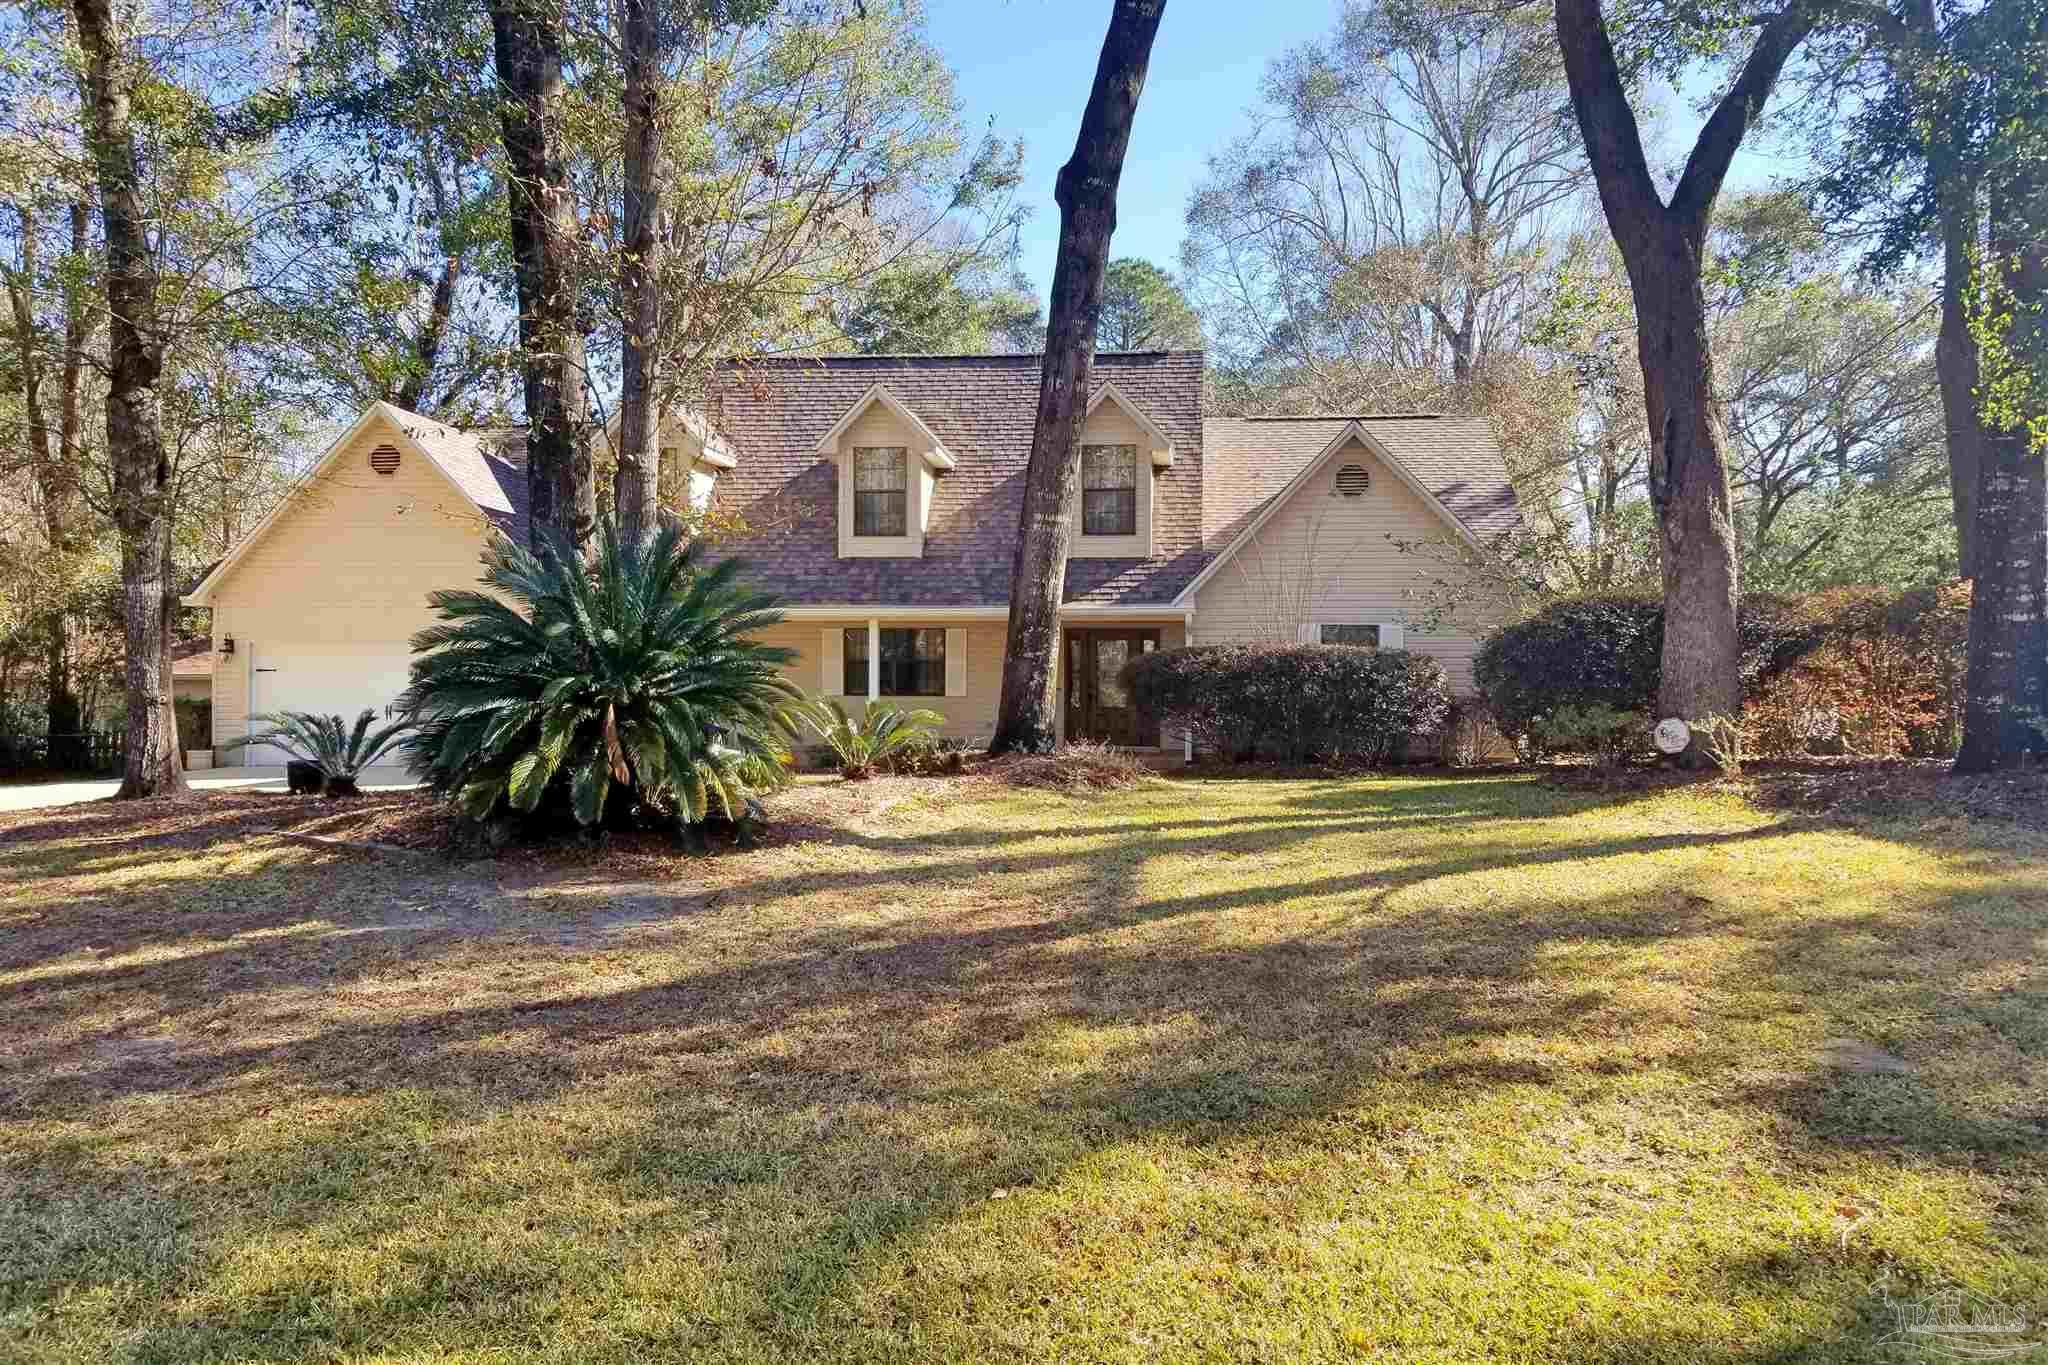 "This Estate Sized Property (approx 1.12 acre) is located along a creek and wooded area that can never be built on! This end of Sonya St is quiet and one of the communities most desired locations. Sales there are rare with very low turnover! Woodbine Springs is our areas only true ""PRIVATE"" Lake Community with great fishing, kayaking and non-motorized boating.  An Extremely well maintained home has been prepared for its new owner, is nicely landscaped with a detached 15x22 Up Scale Man Cave/Storage Building. Supersized Kitchen and large family room, offer a great opportunity for a growing family! Hardwood Floors and or Ceramic in most main areas, and the Master, and Brand New Carpet Upstairs. The  garage has an additional work area, to match one of the largest Laundry rooms you'll ever find in a home in this area.  Are you looking for storage; 2 separate areas accessed through a real door, will exceed your expectations.  There are dual HVAC systems for up and downstairs, all replaced in 2016. This property rests on 2 separate lots that are being being sold as a package deal only!"